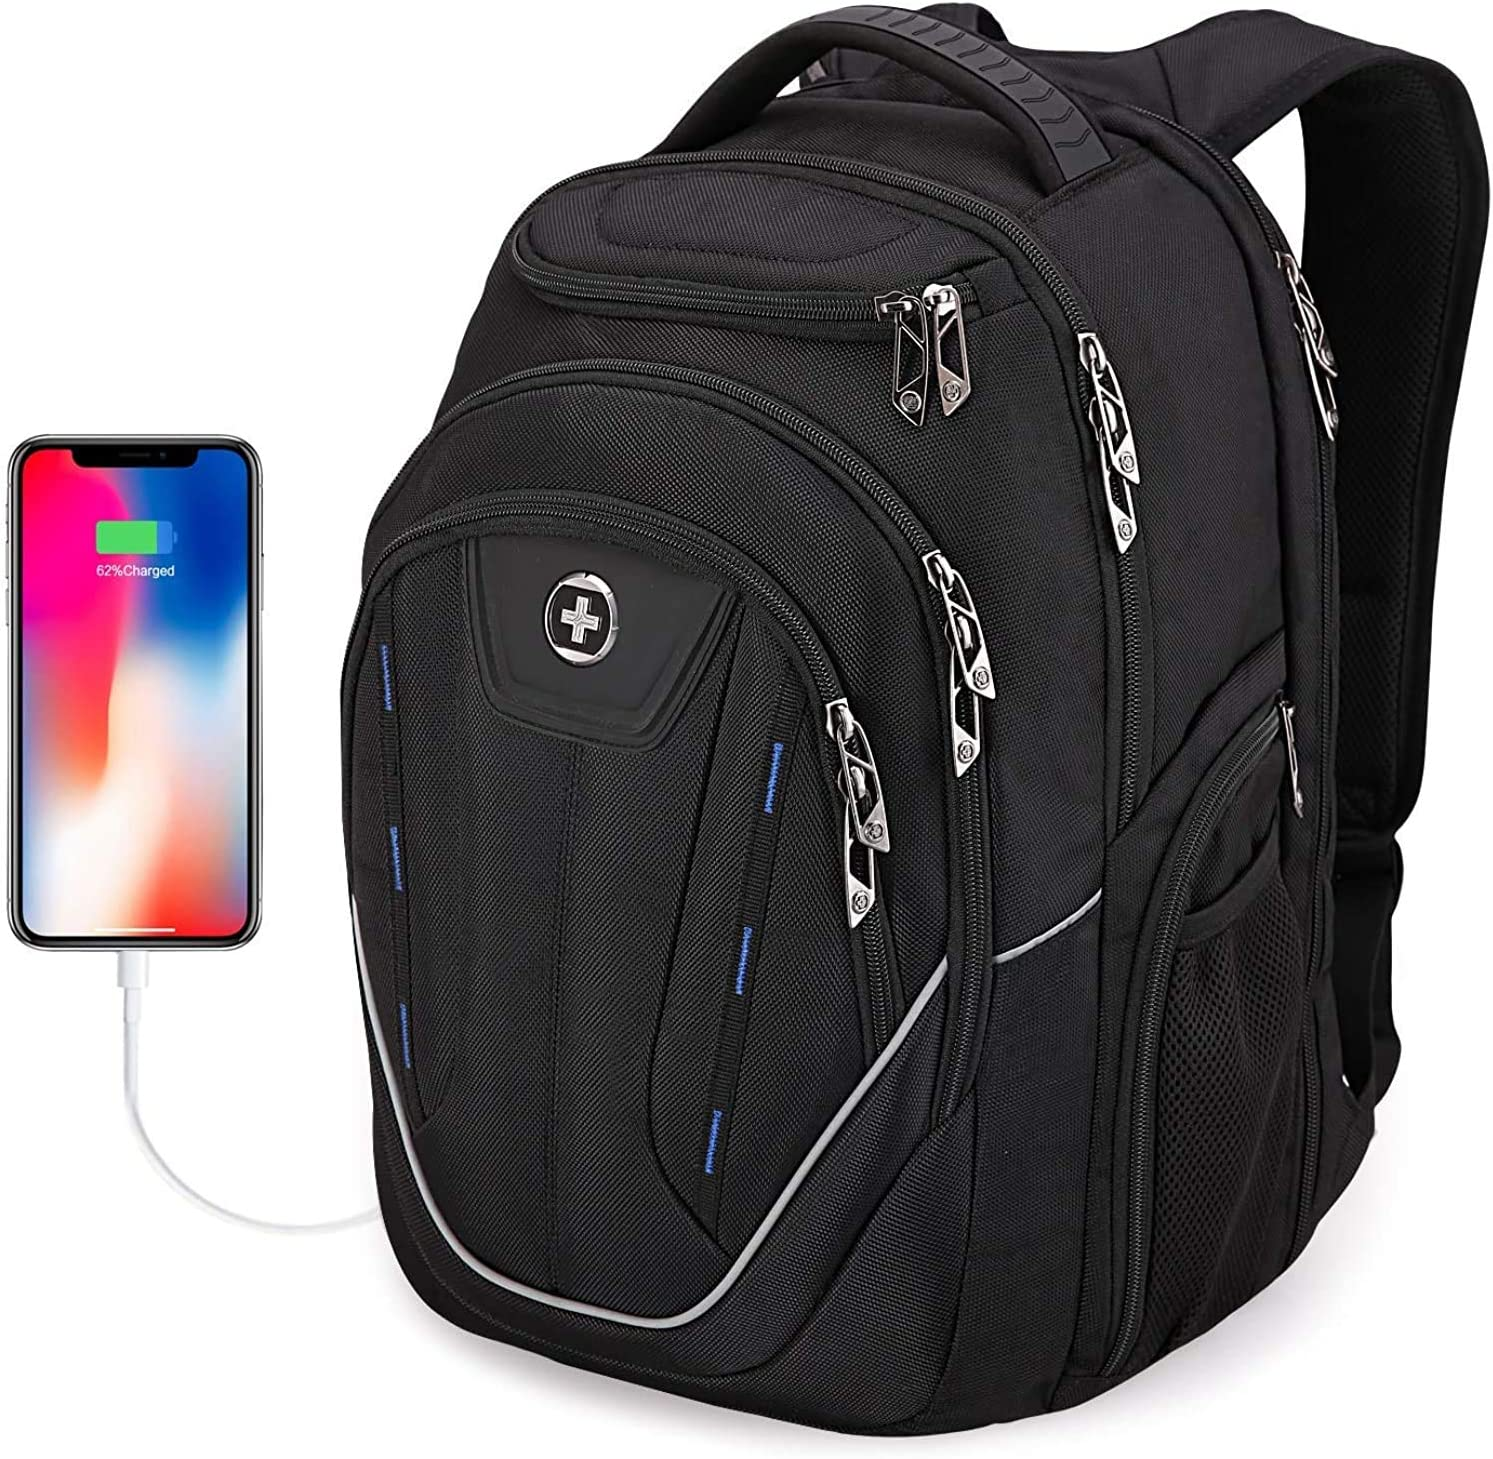 Swissdigital Terabyte TSA-Friendly Water-Resistant Large Backpack, Business Laptop Backpack for Men with USB Charging Port/RFID Protection Big School Bookbag Fits up to 15.6